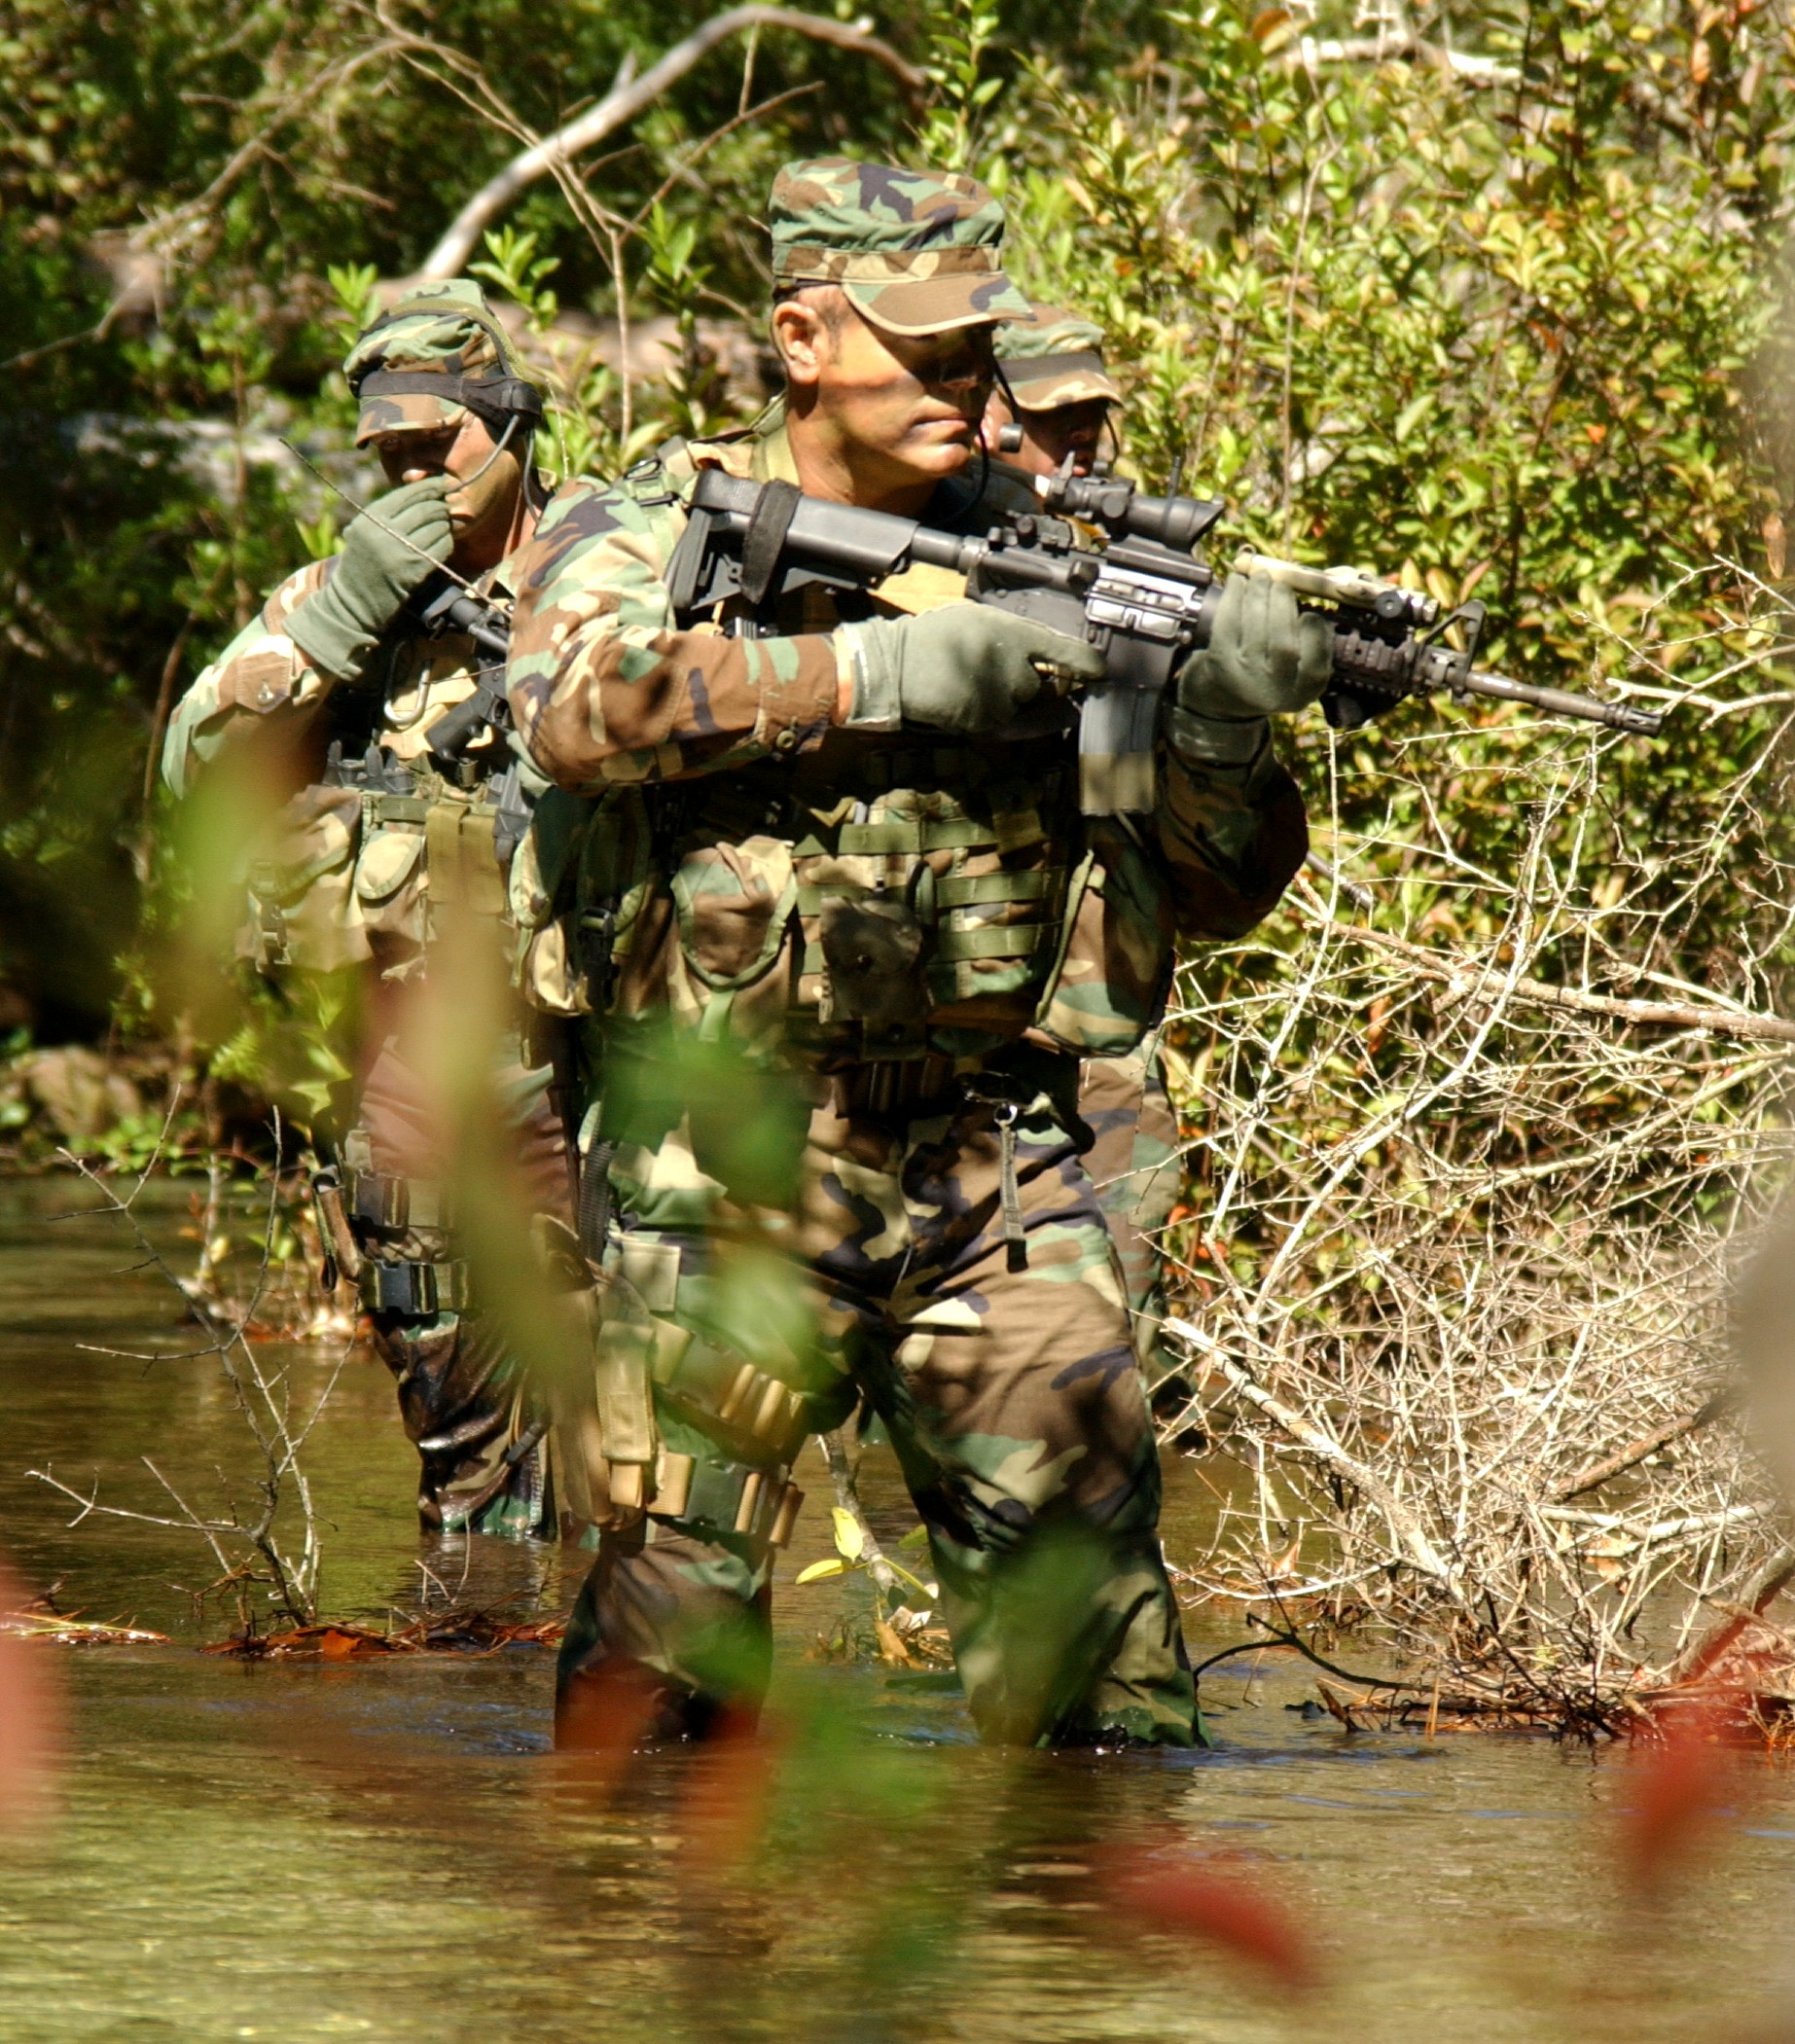 special operations team demo - HD1845×2101